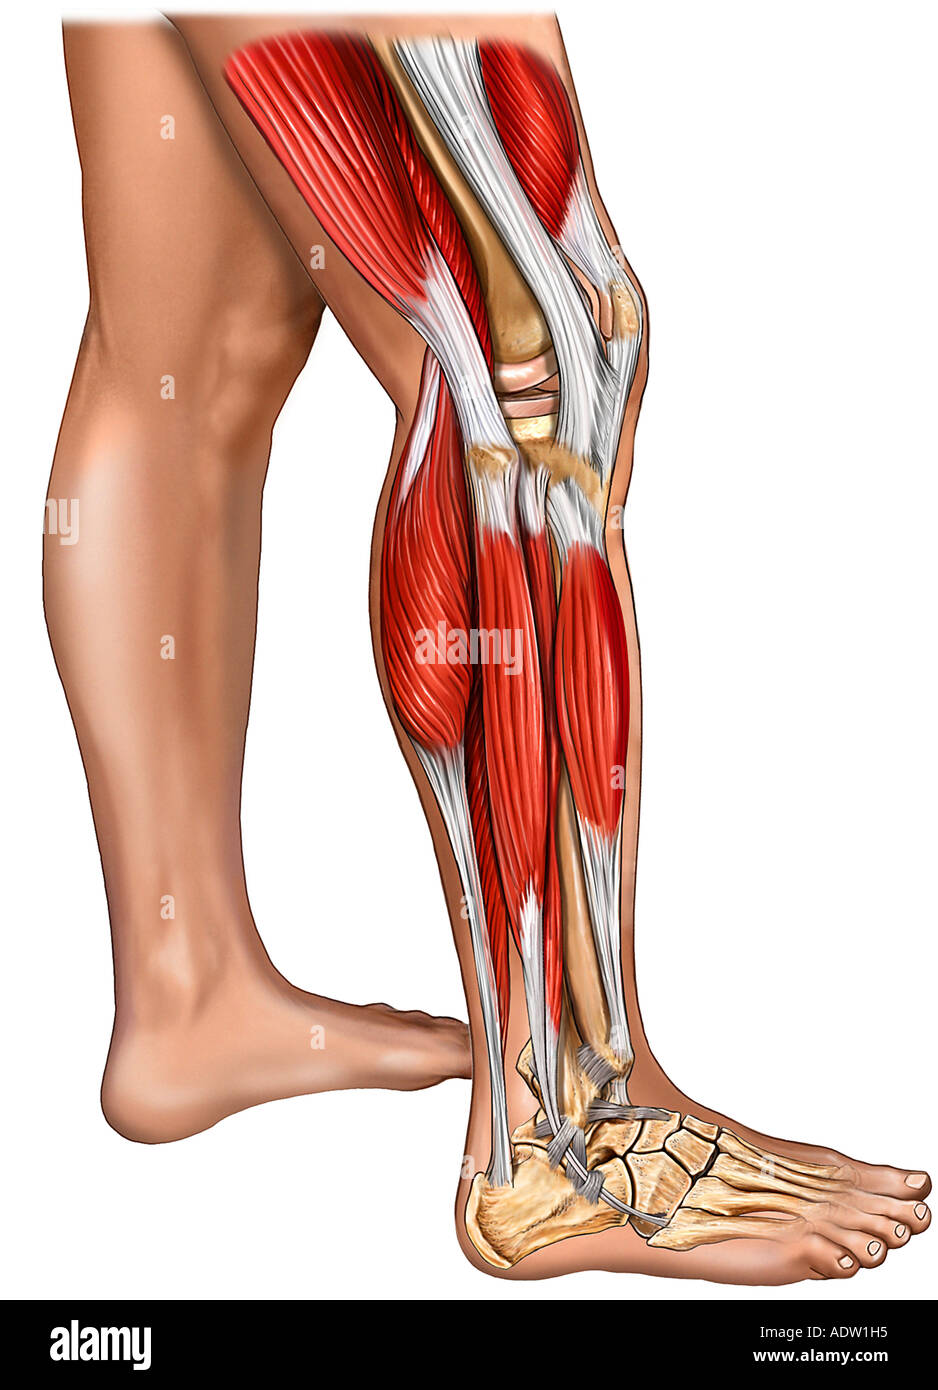 Muscles Of The Leg Knee And Foot With Skin Lateral View Stock